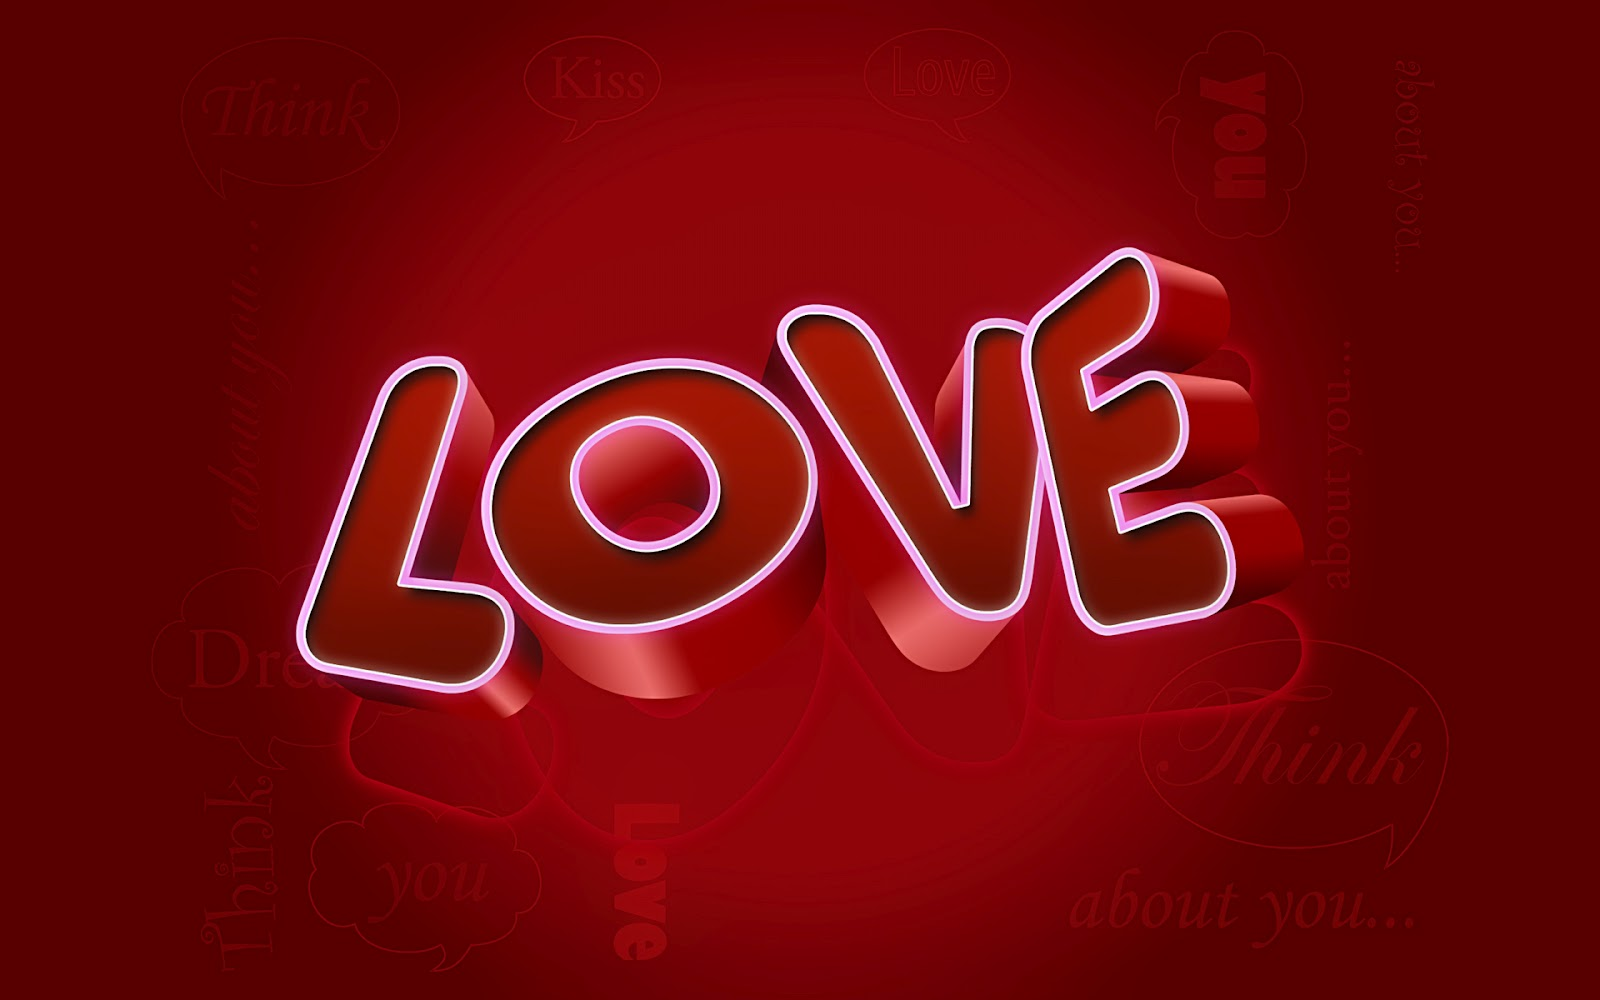 Love Wallpaper All New : New Latest i love you wallpapers on this valentines day 2016